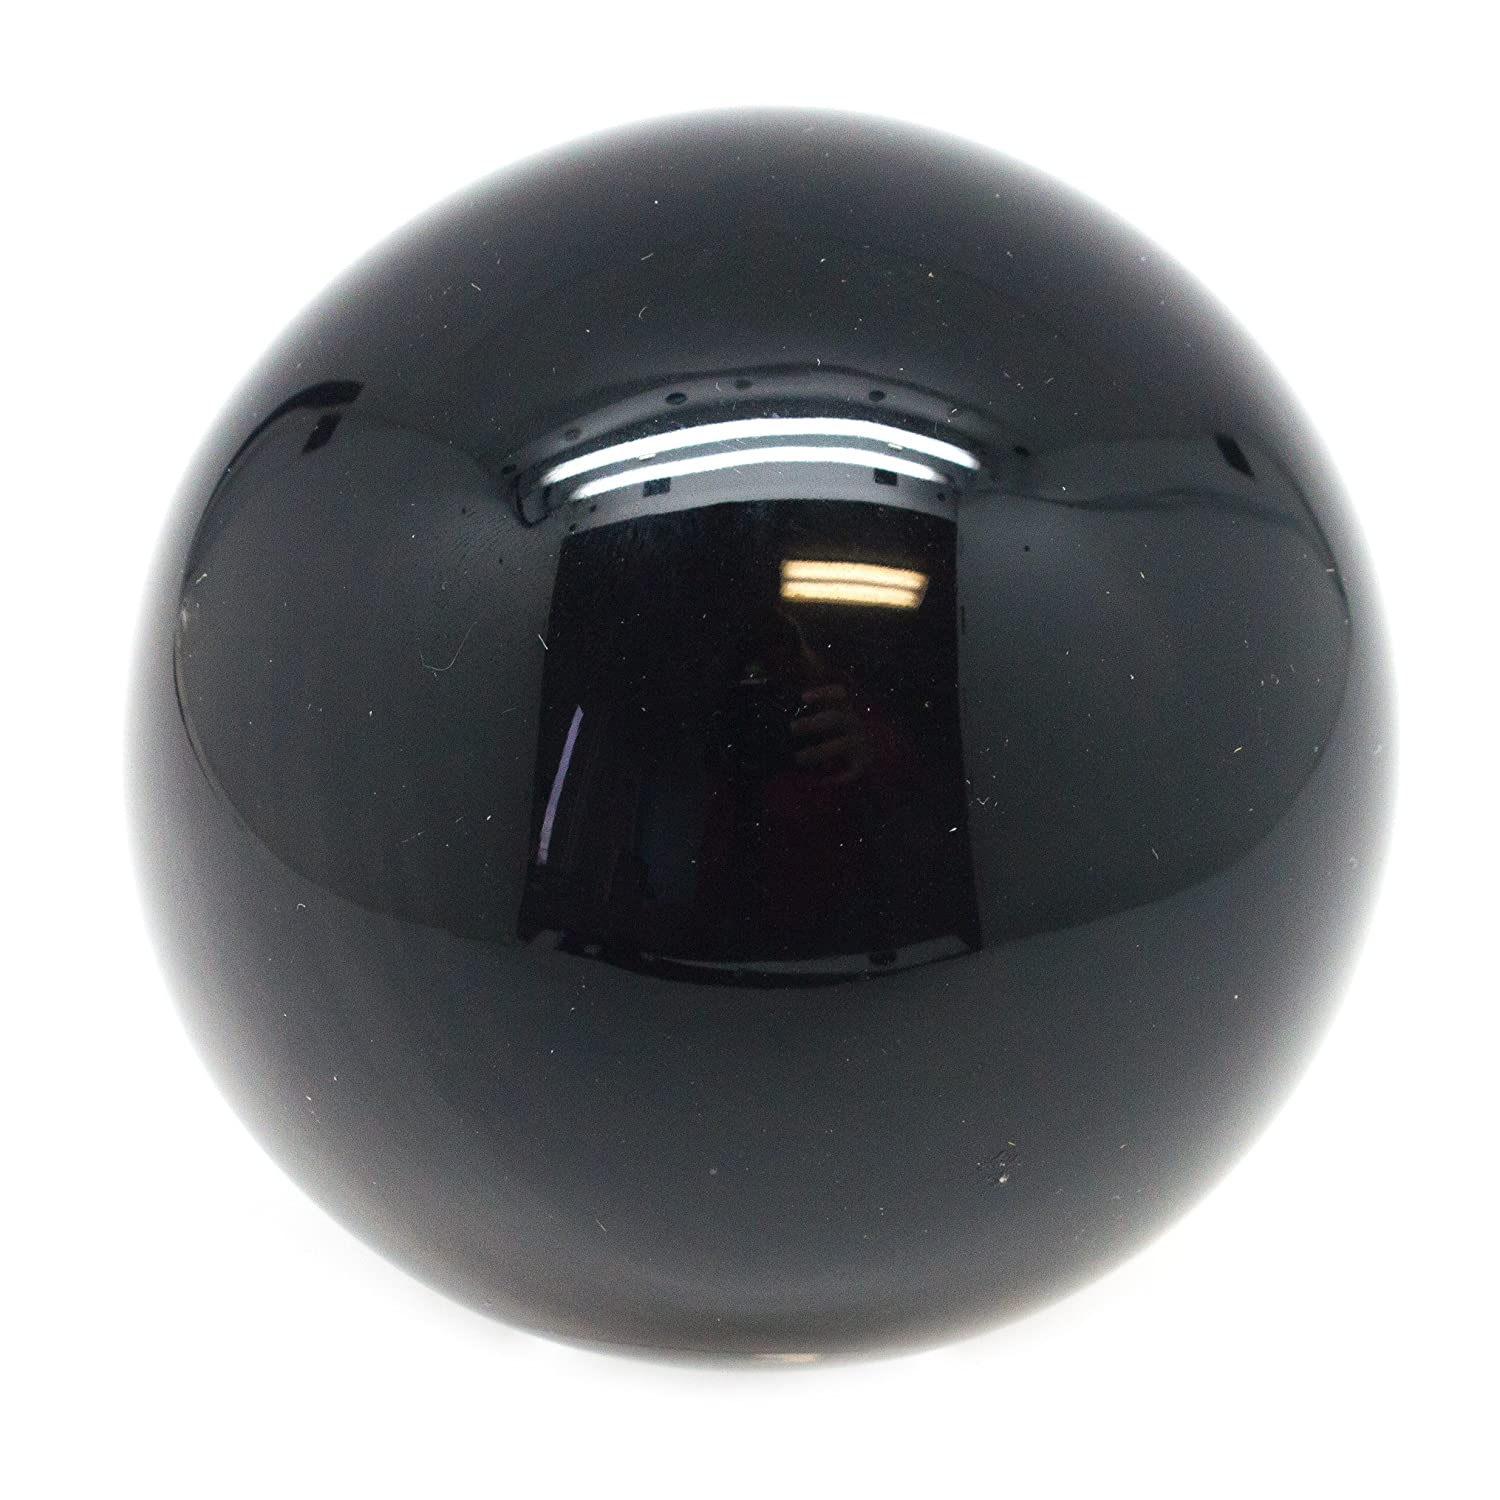 Home Decoration 100/% Natural and Genuine Meditation Mina Heal Obsidian Crystal Ball for Fengshui Ball Crystal Healing Divination Sphere 50 mm